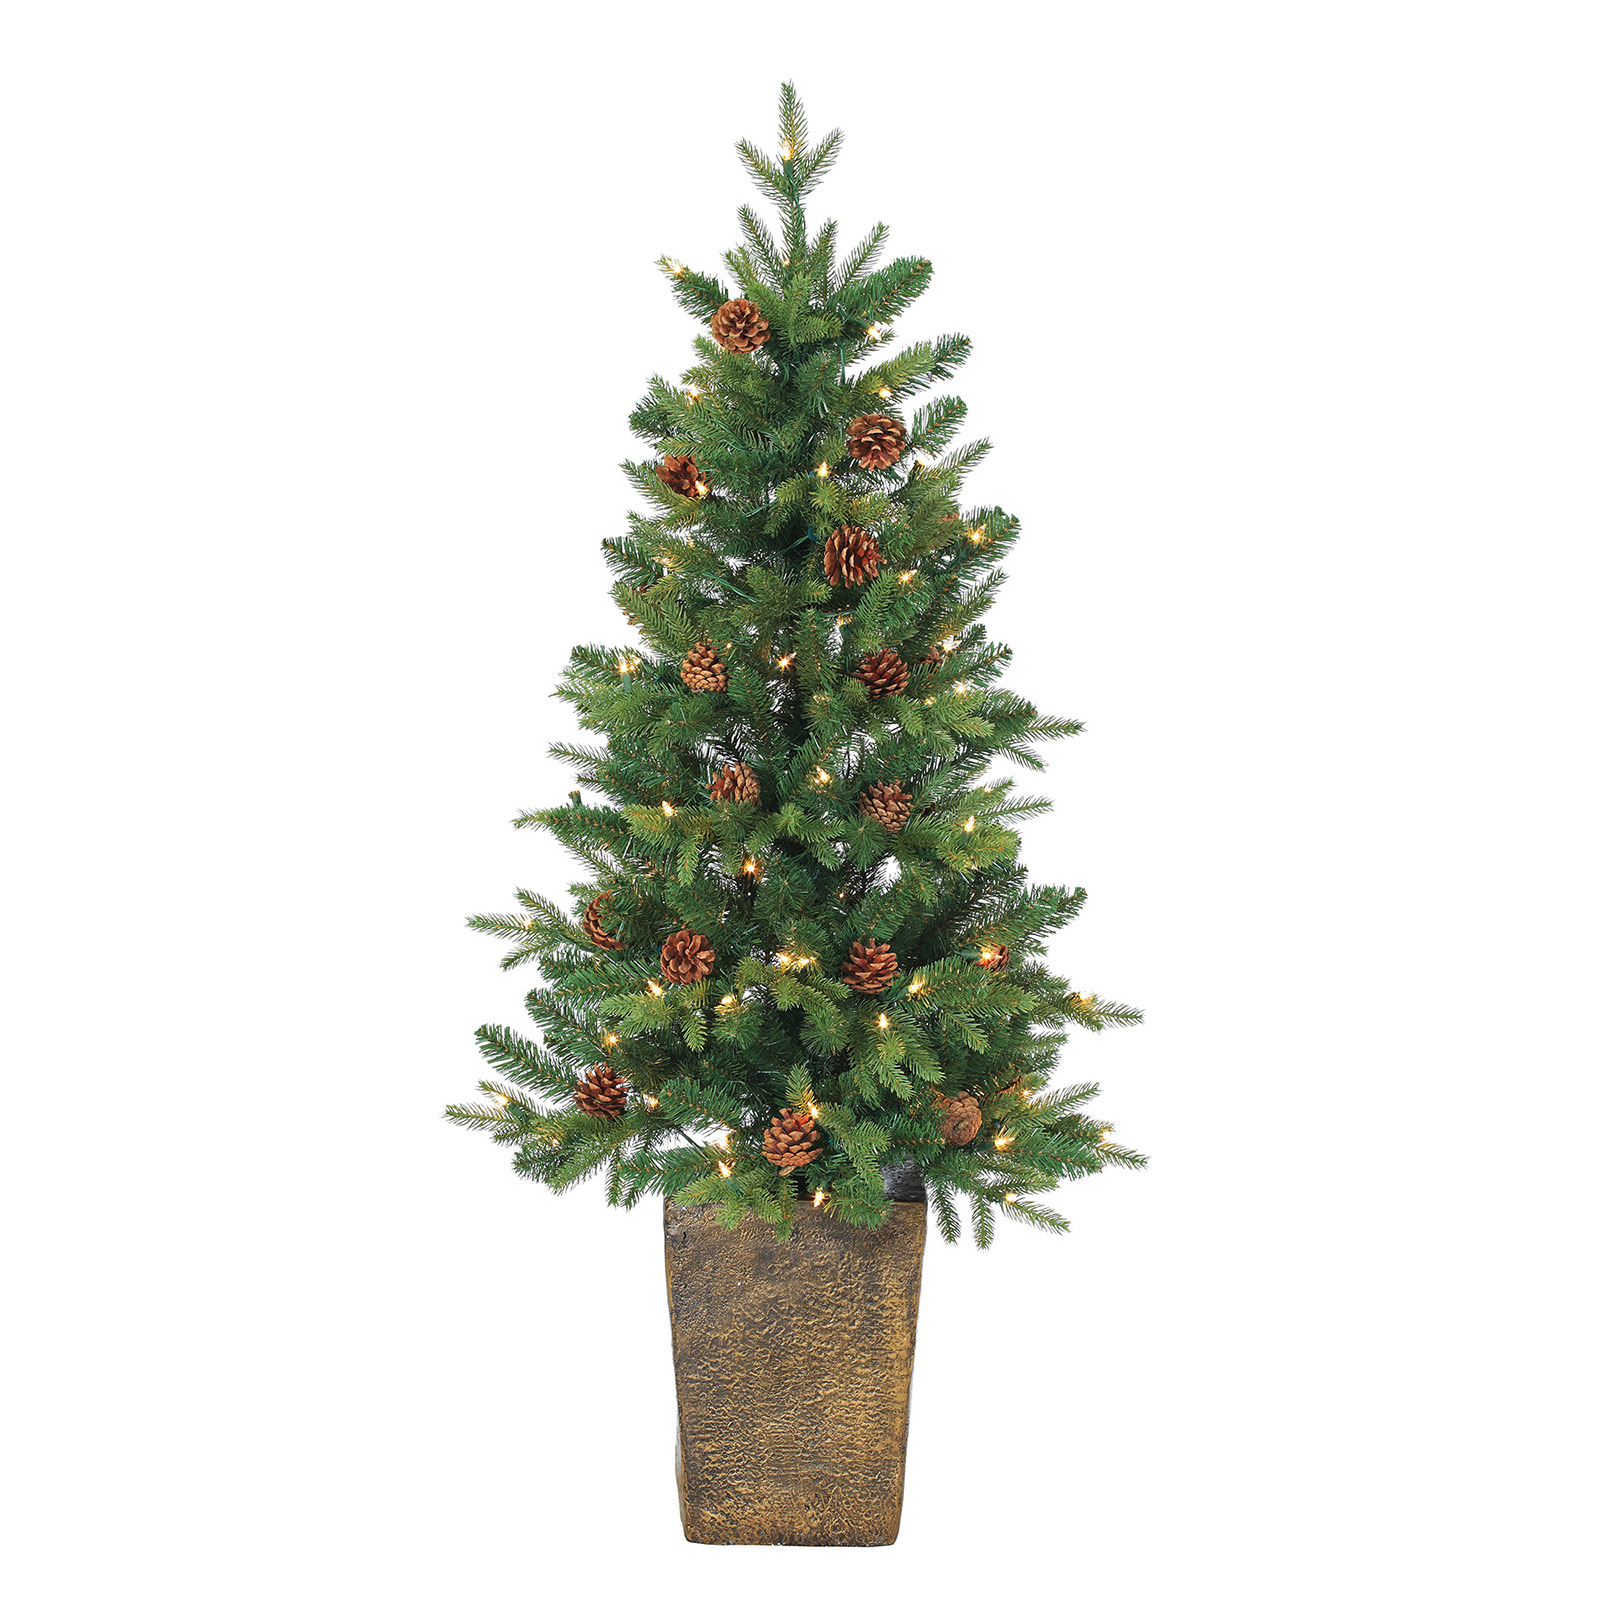 Christmas Tree Pot: 4 Ft. Potted Georgia Pine Natural Cut Pre-Lit Full